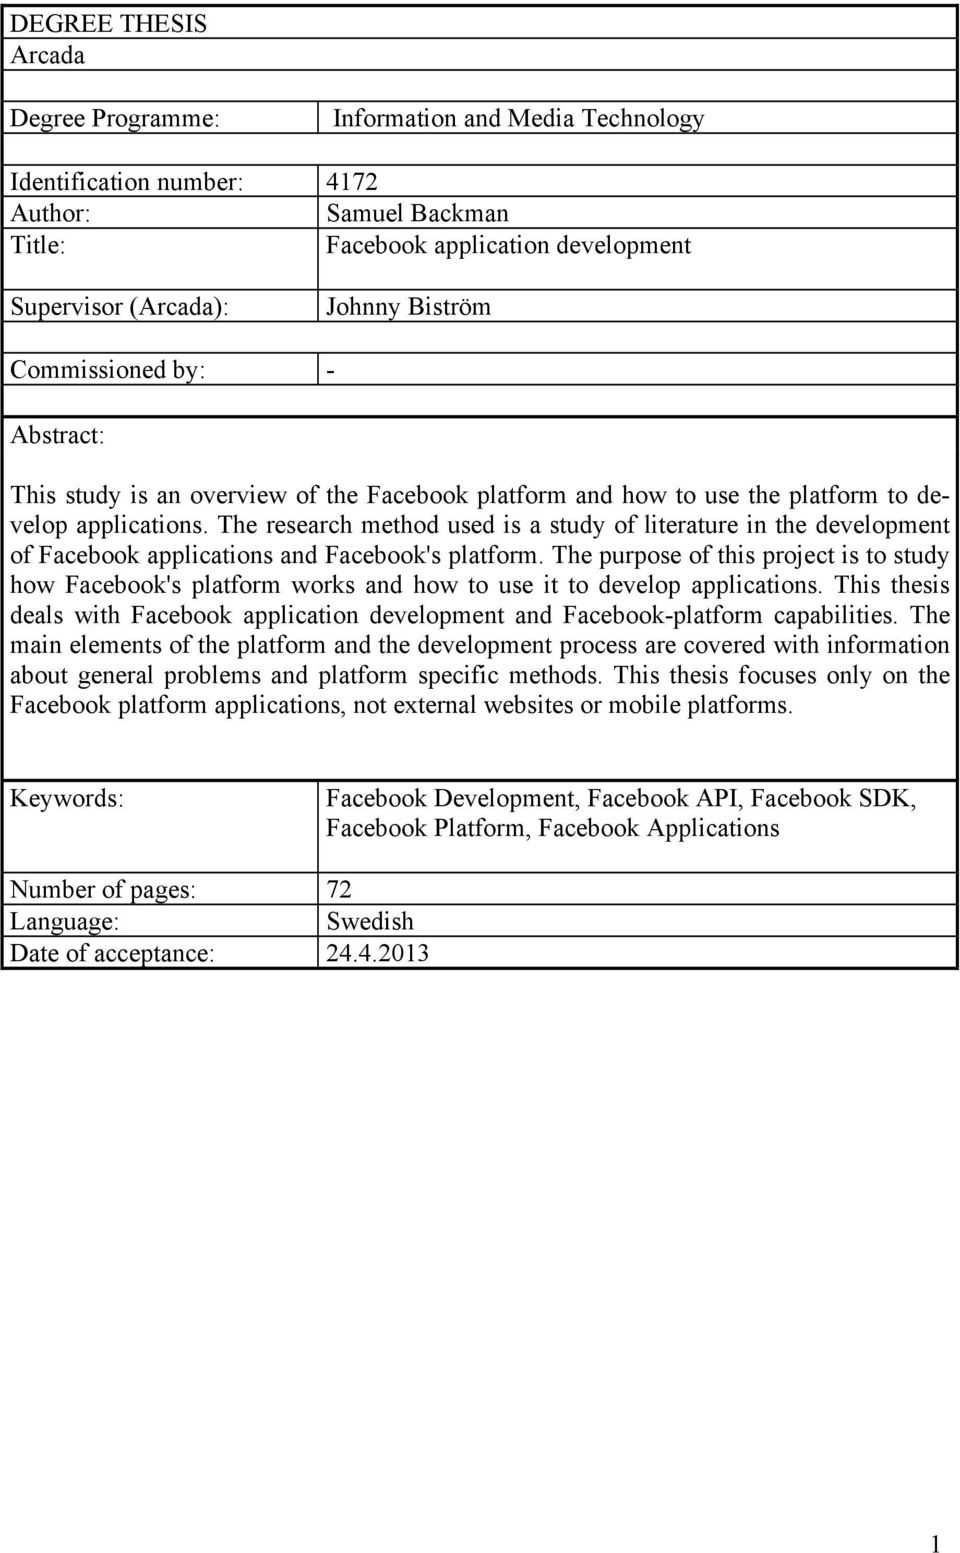 The research method used is a study of literature in the development of Facebook applications and Facebook's platform.